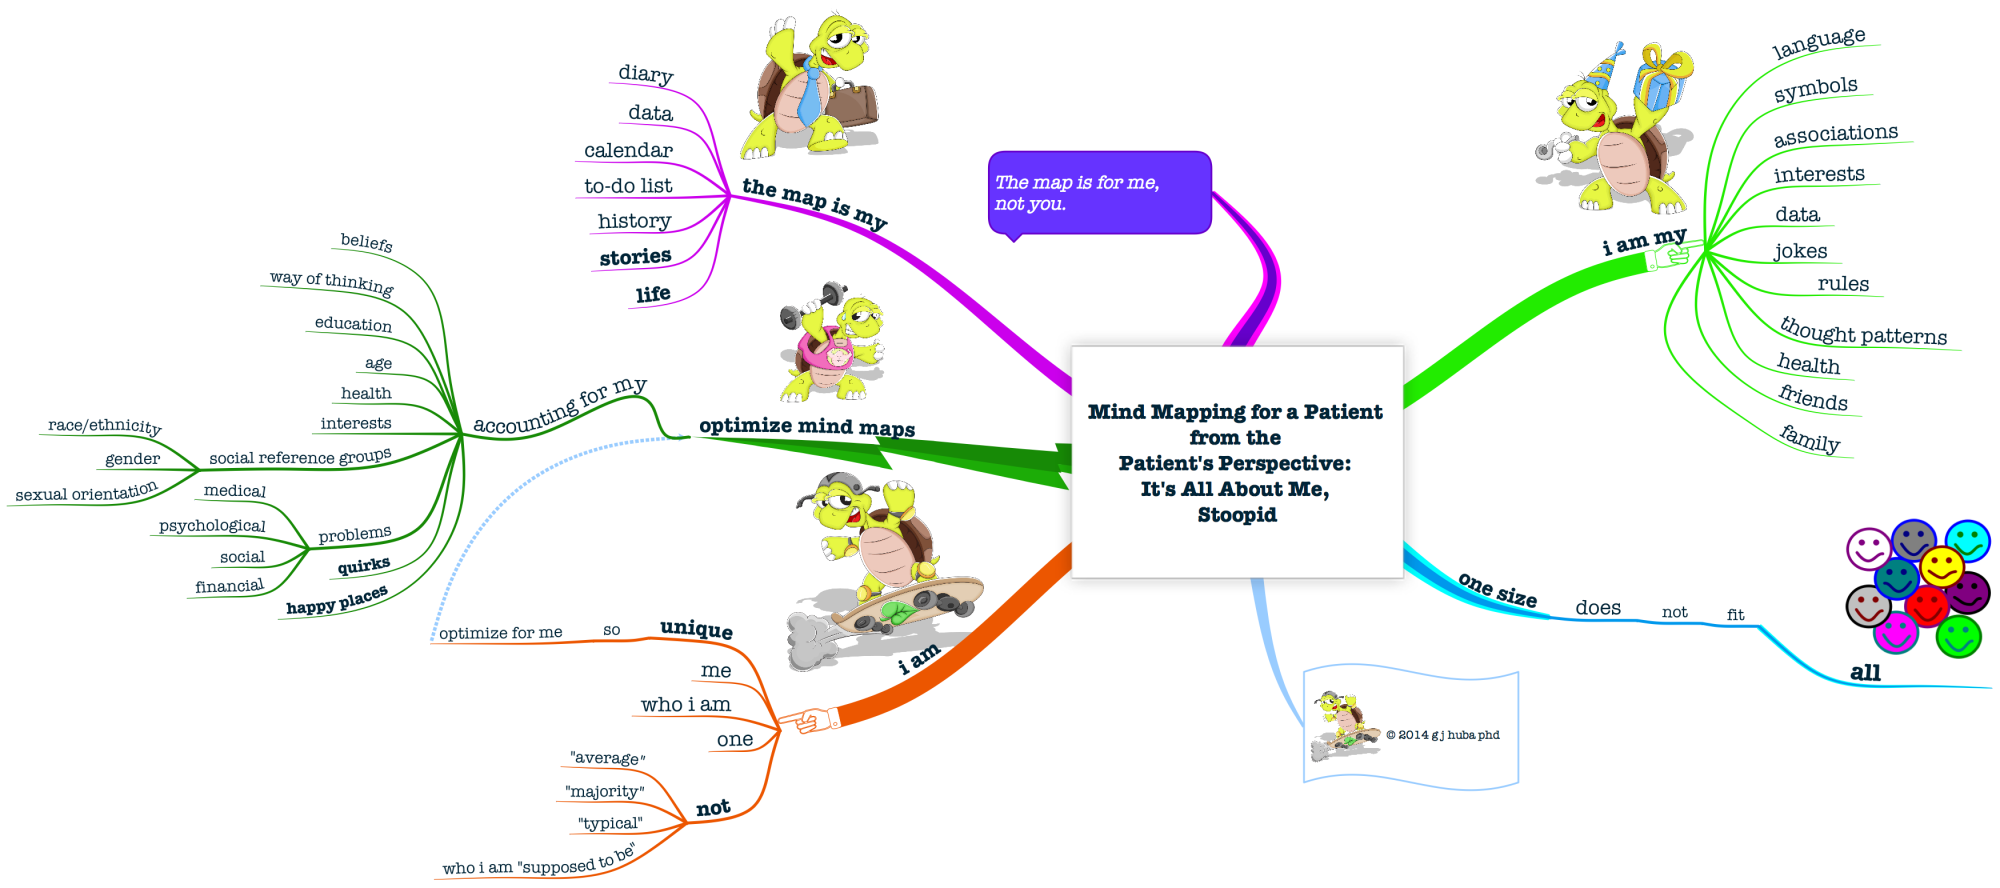 Using Mind Maps In Patient Centered Care